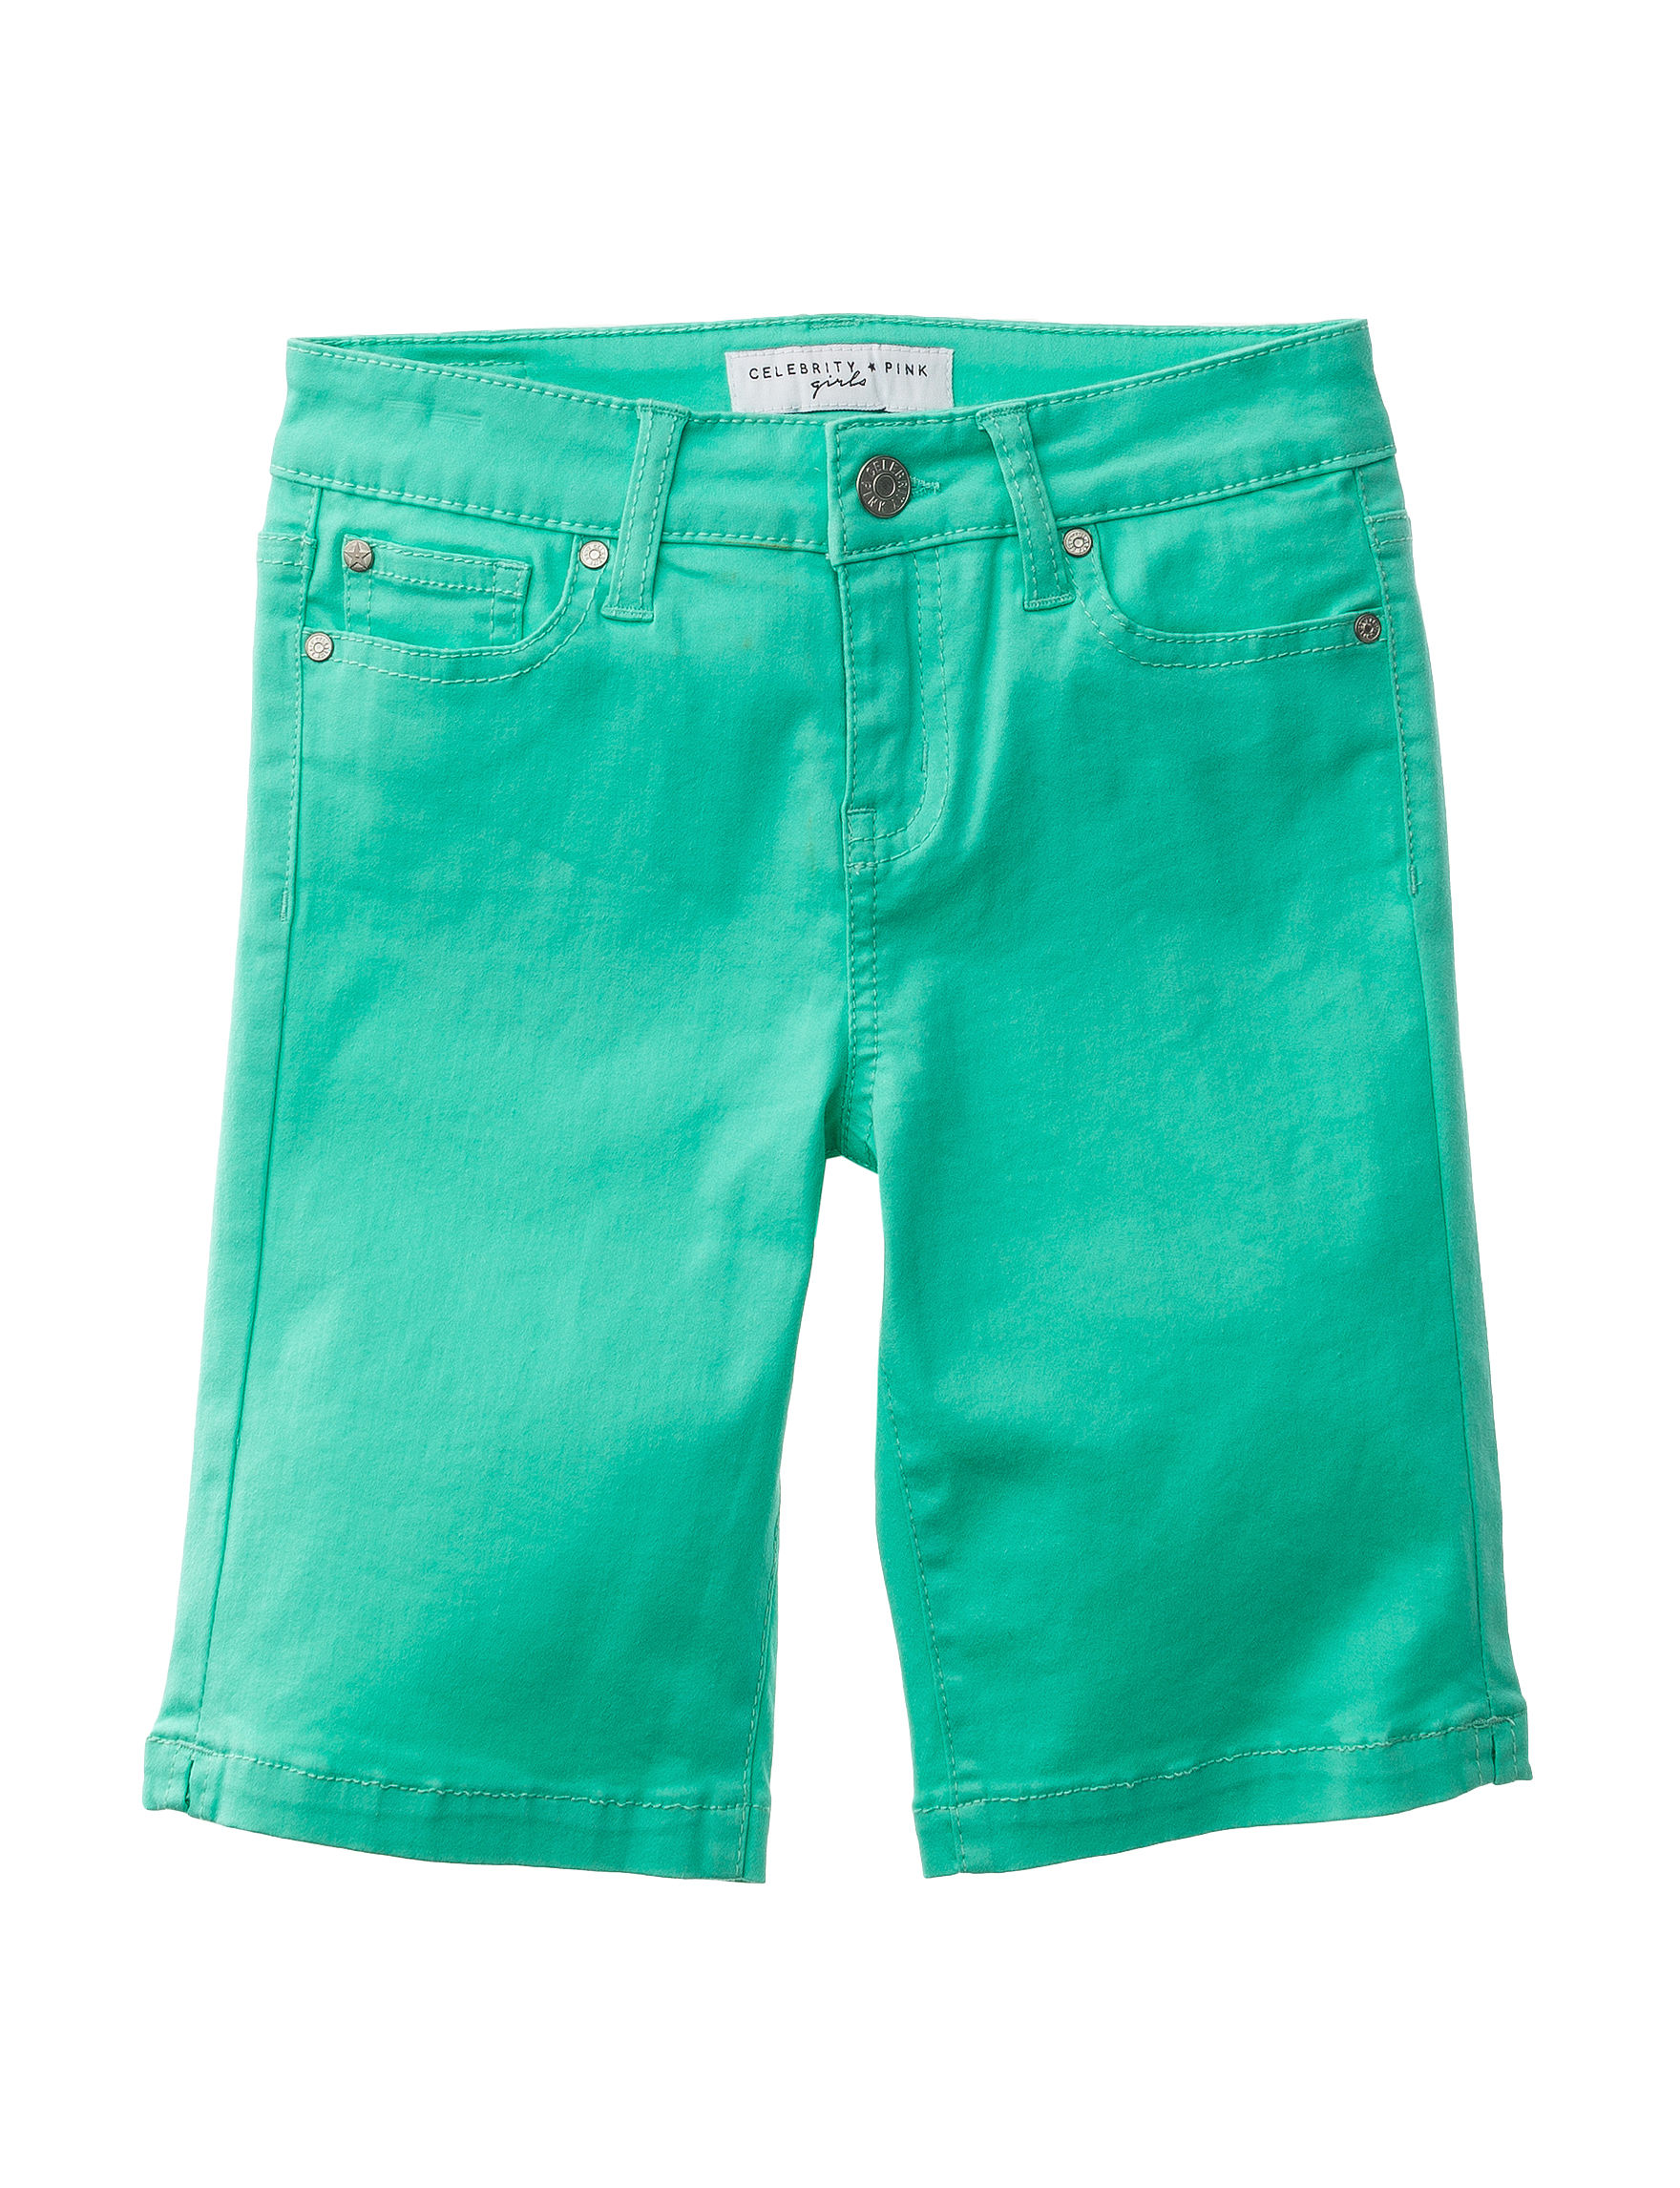 Celebrity Pink Green Relaxed